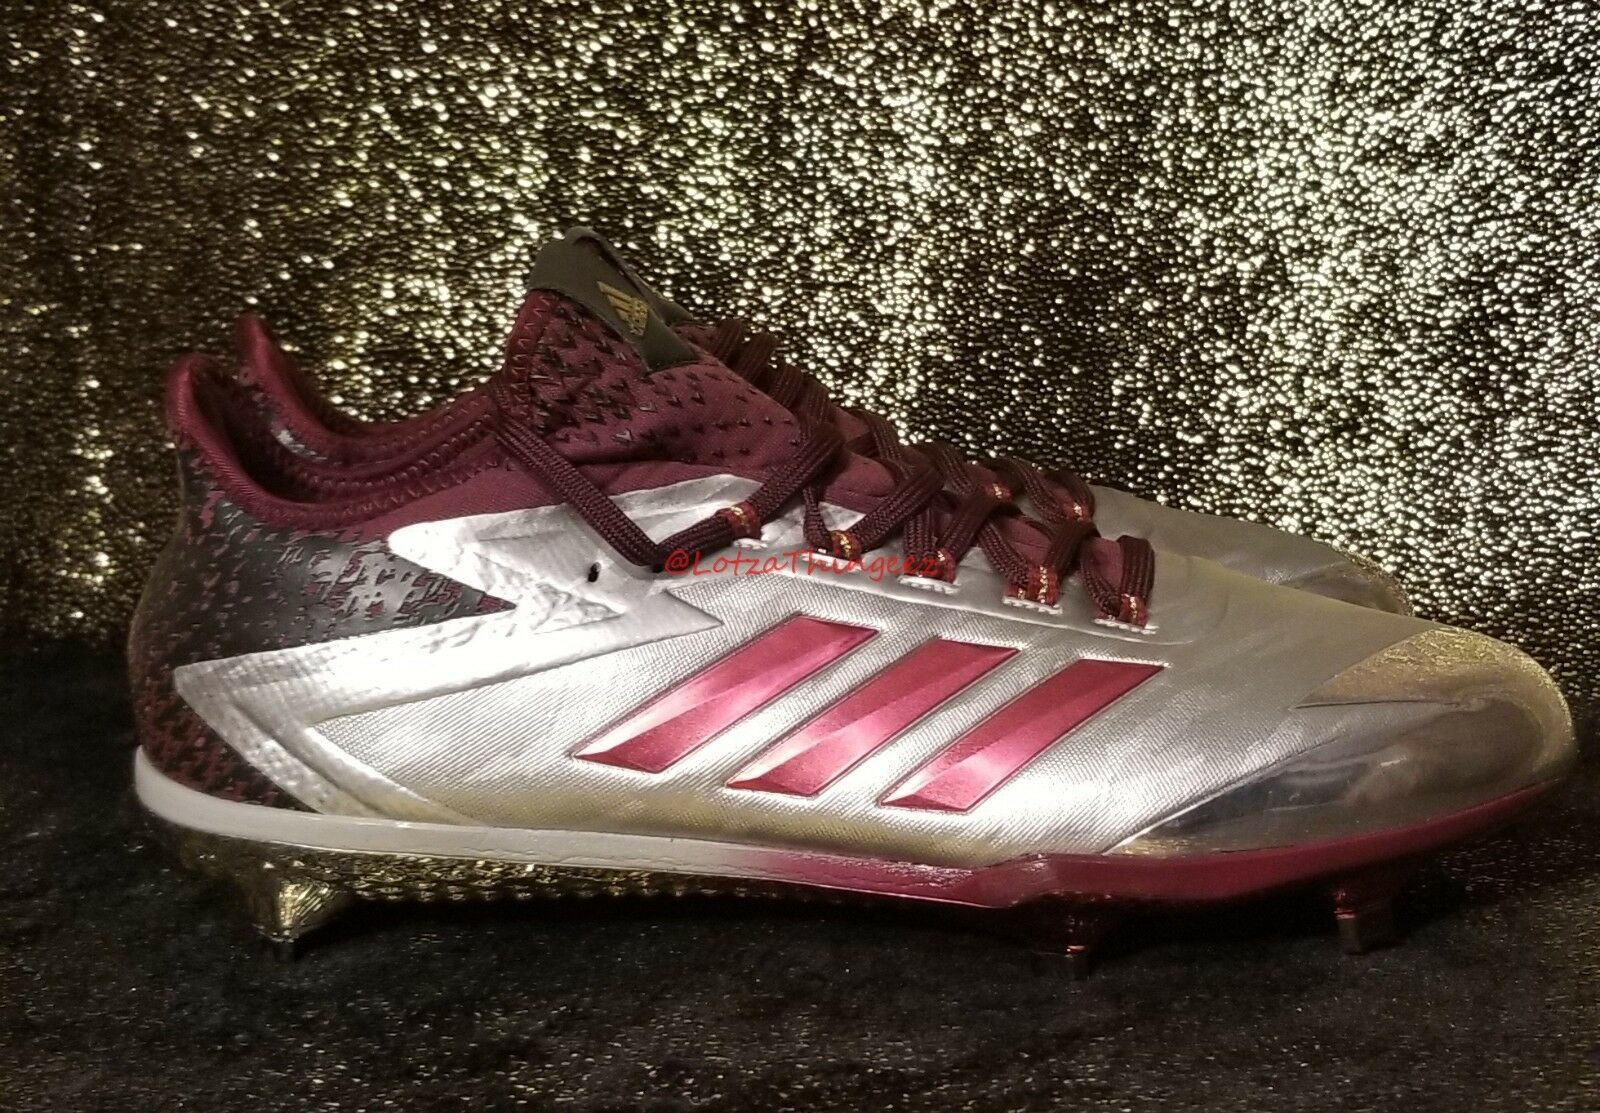 Adidas Ortholite 11.5 Baseball Cleats ADIZERO Afterburn 4 Le Maroon Silver New